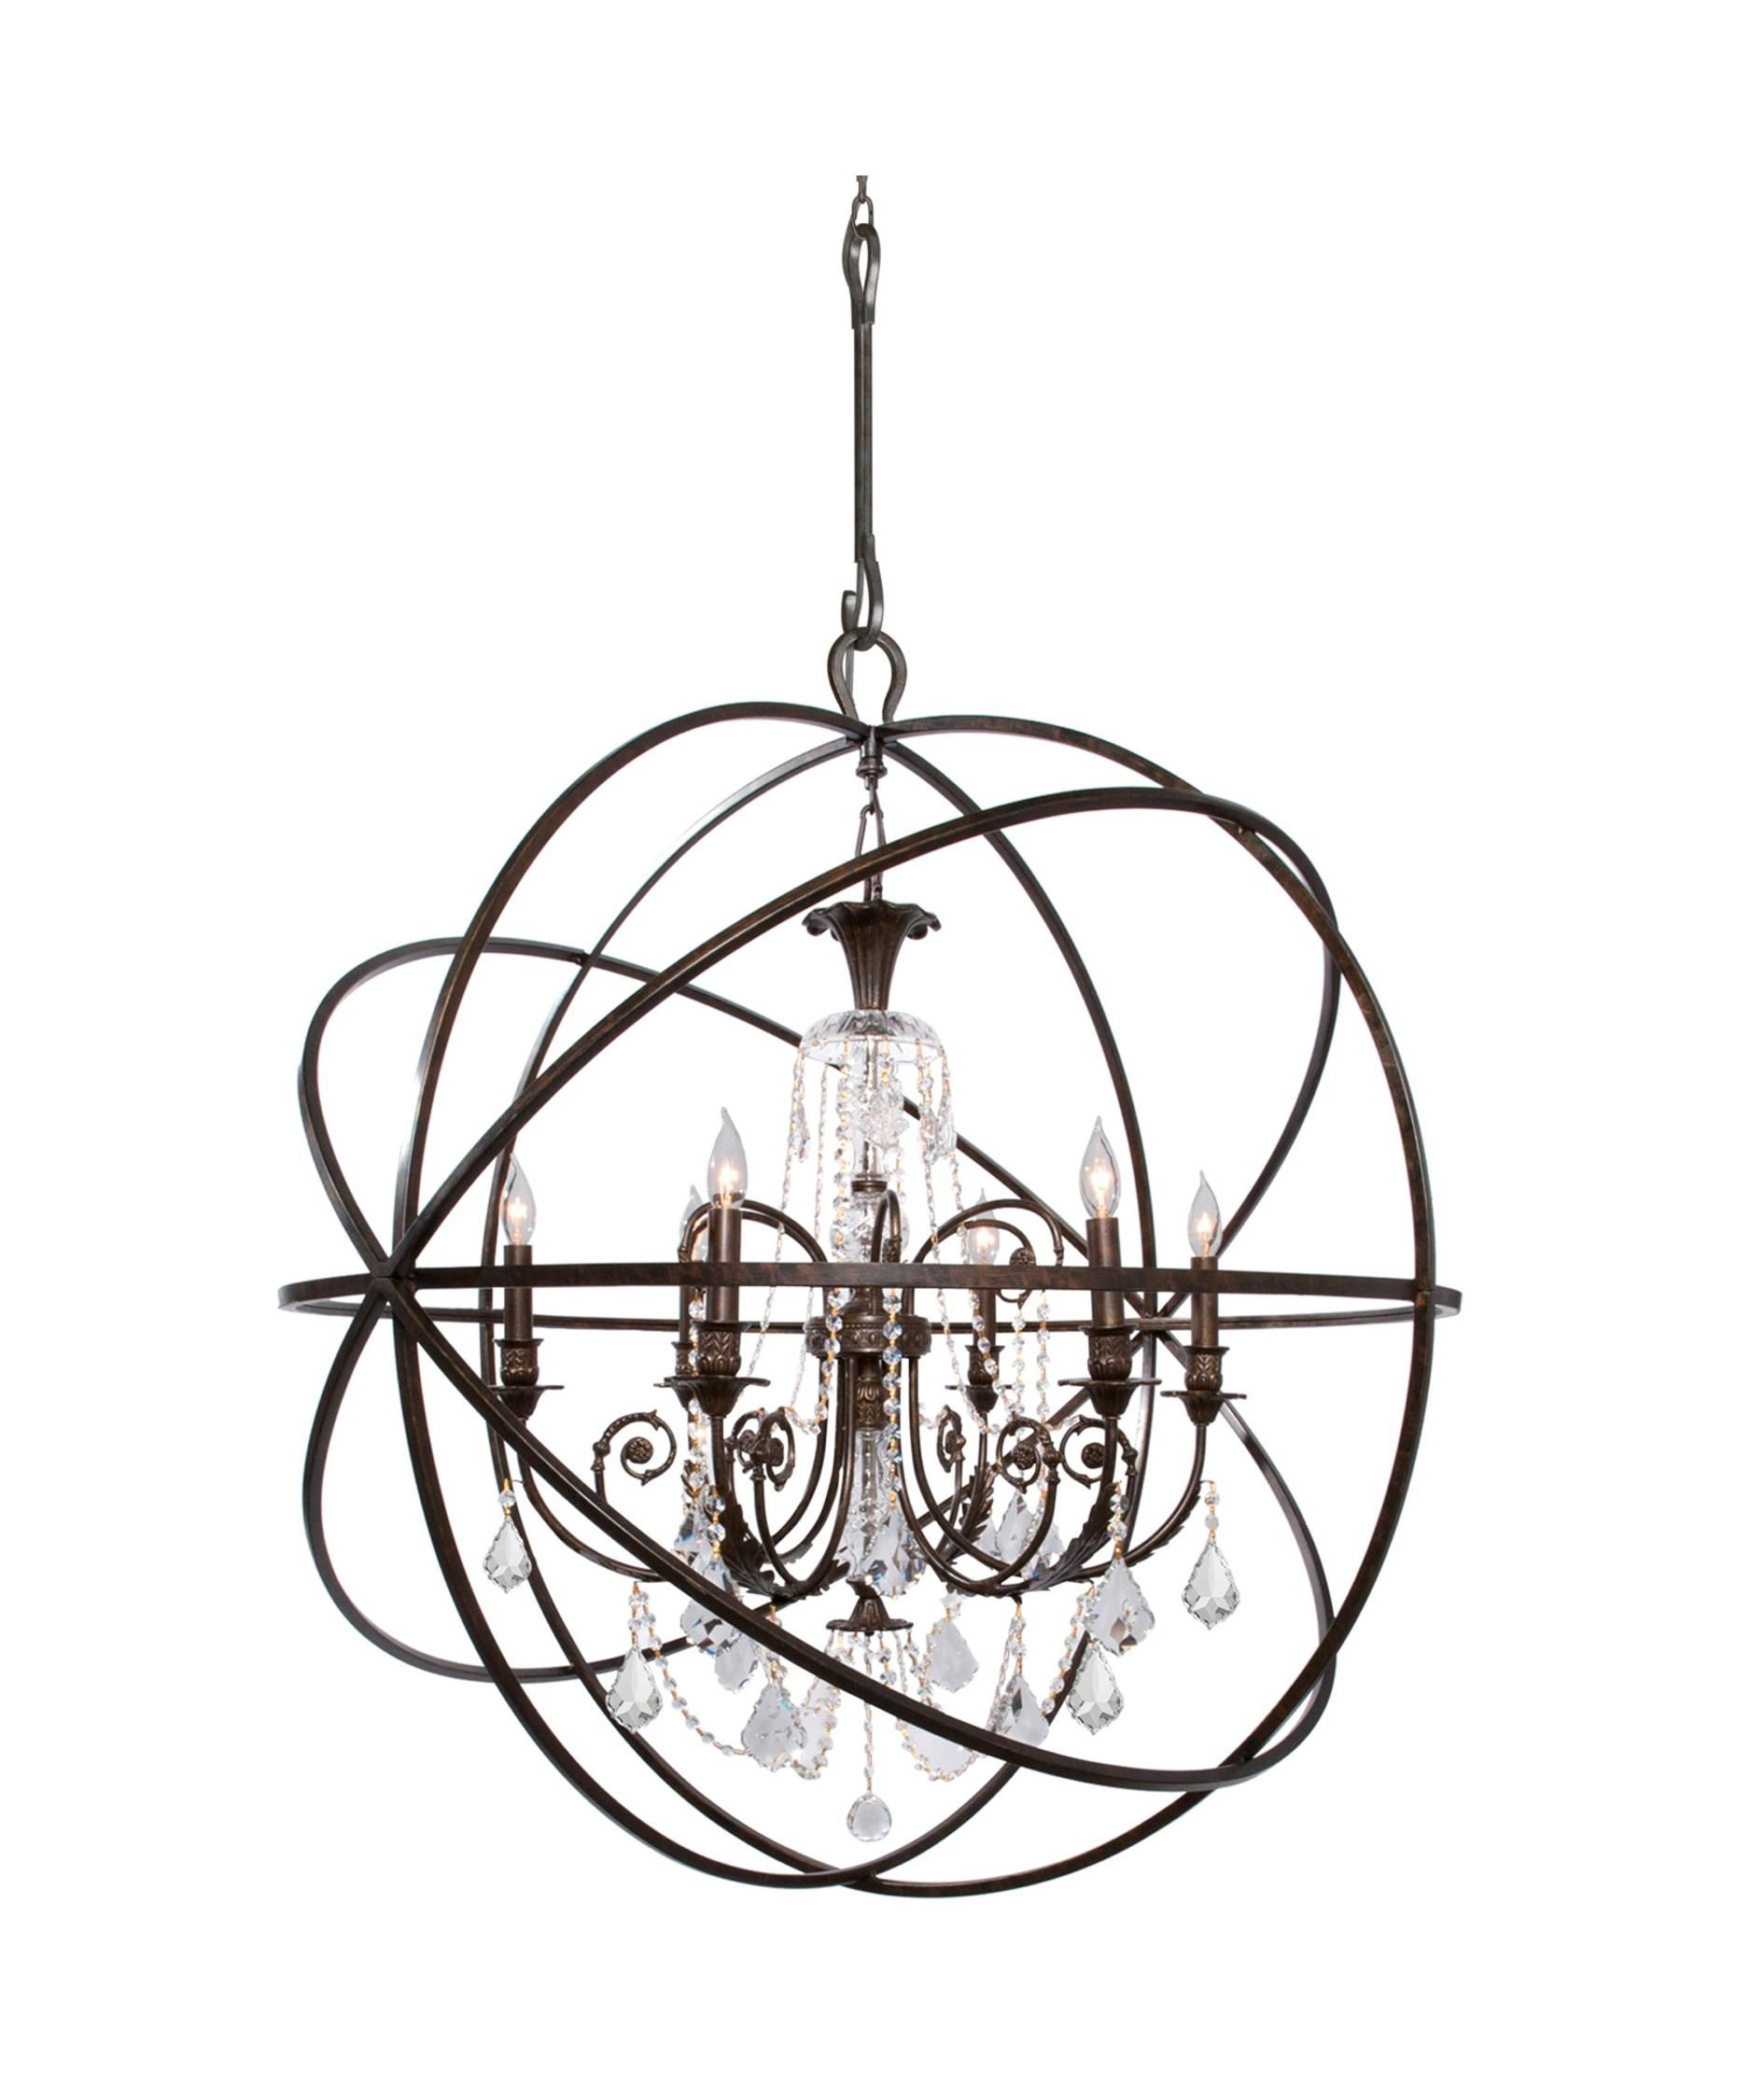 Crystorama 9219 Solaris 40 Inch Chandelier Lighting